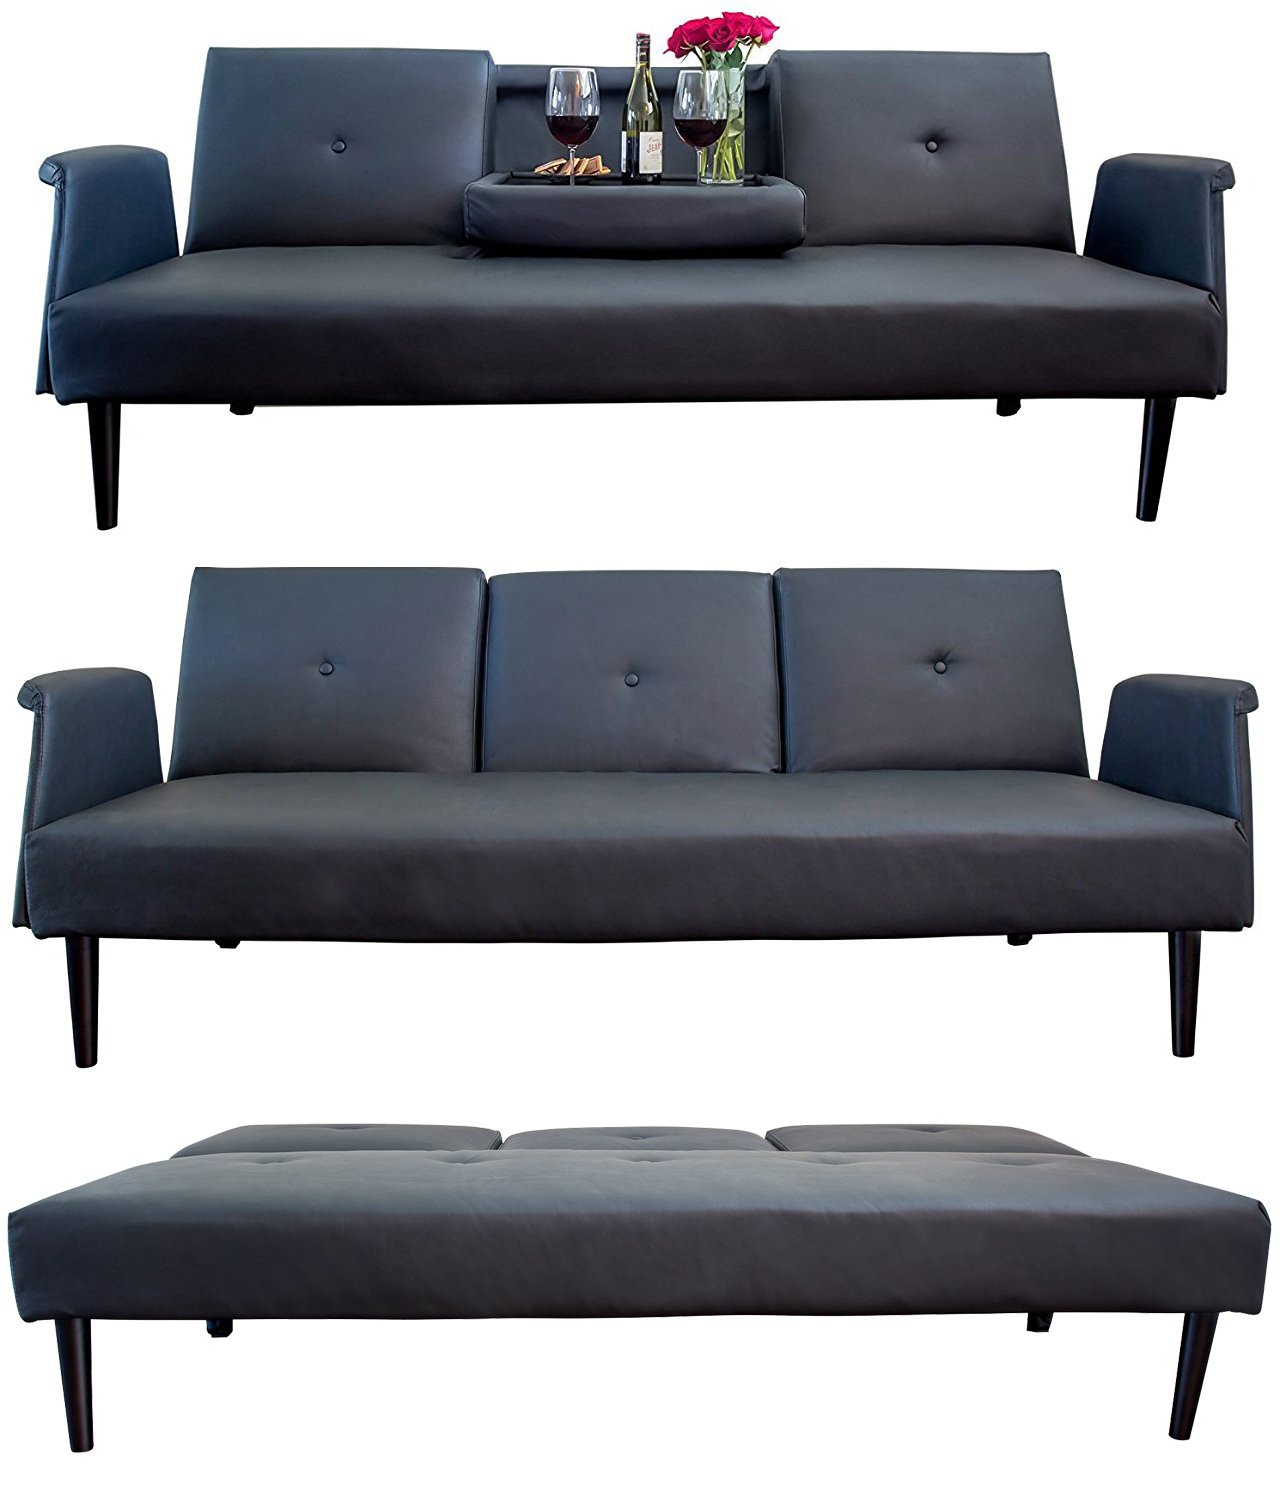 Amazon Leather Sofa Bed with Tray and Cup Holders Black